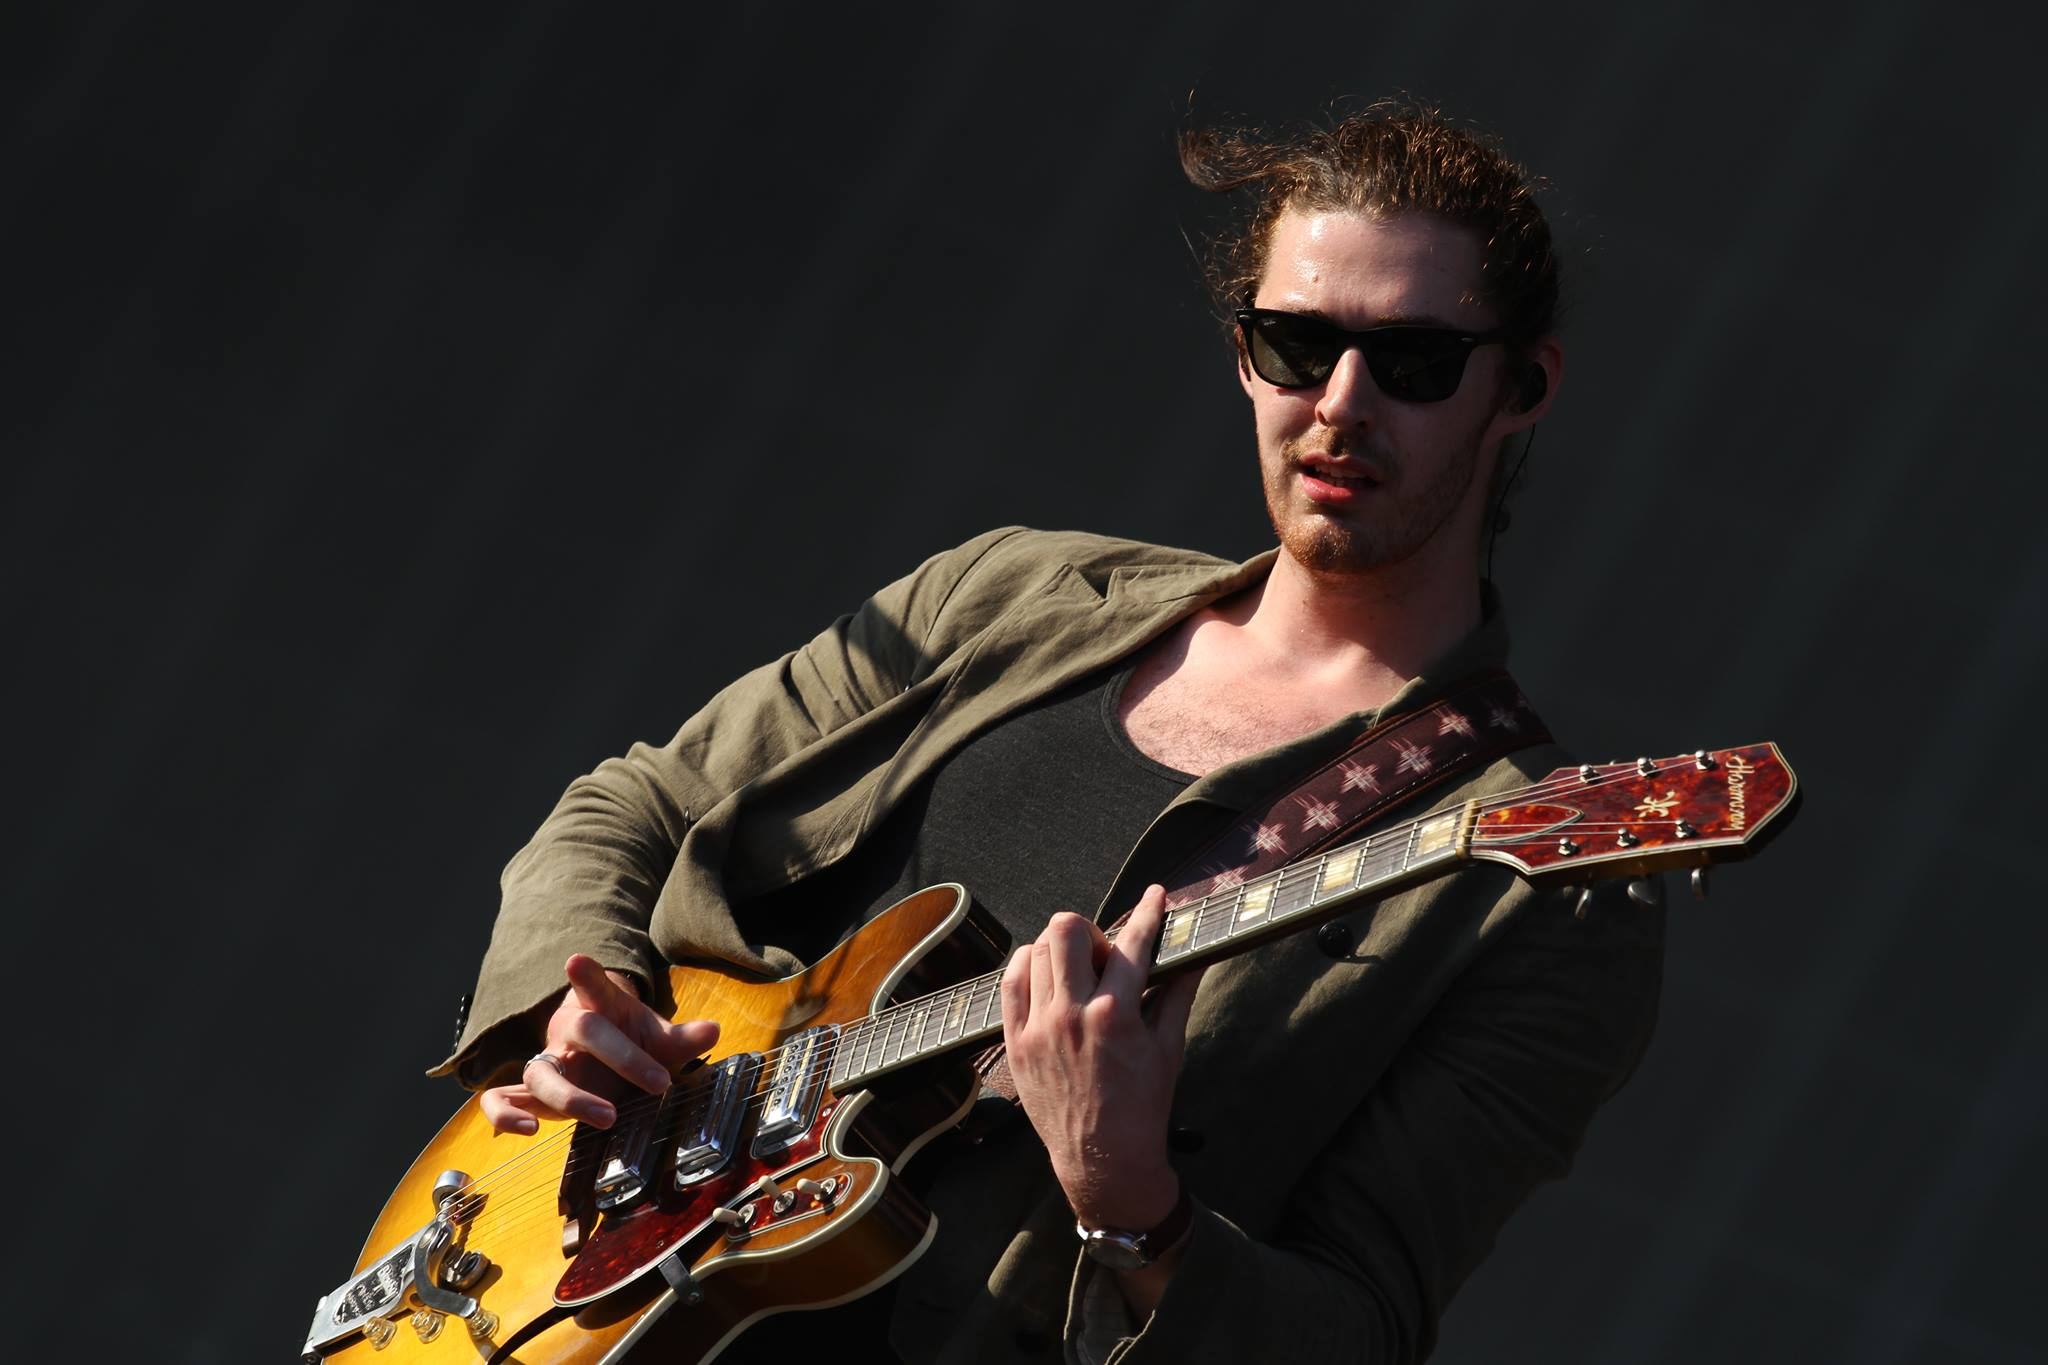 Live Review: Hozier // O2 Academy, Sheffield 11.01.16